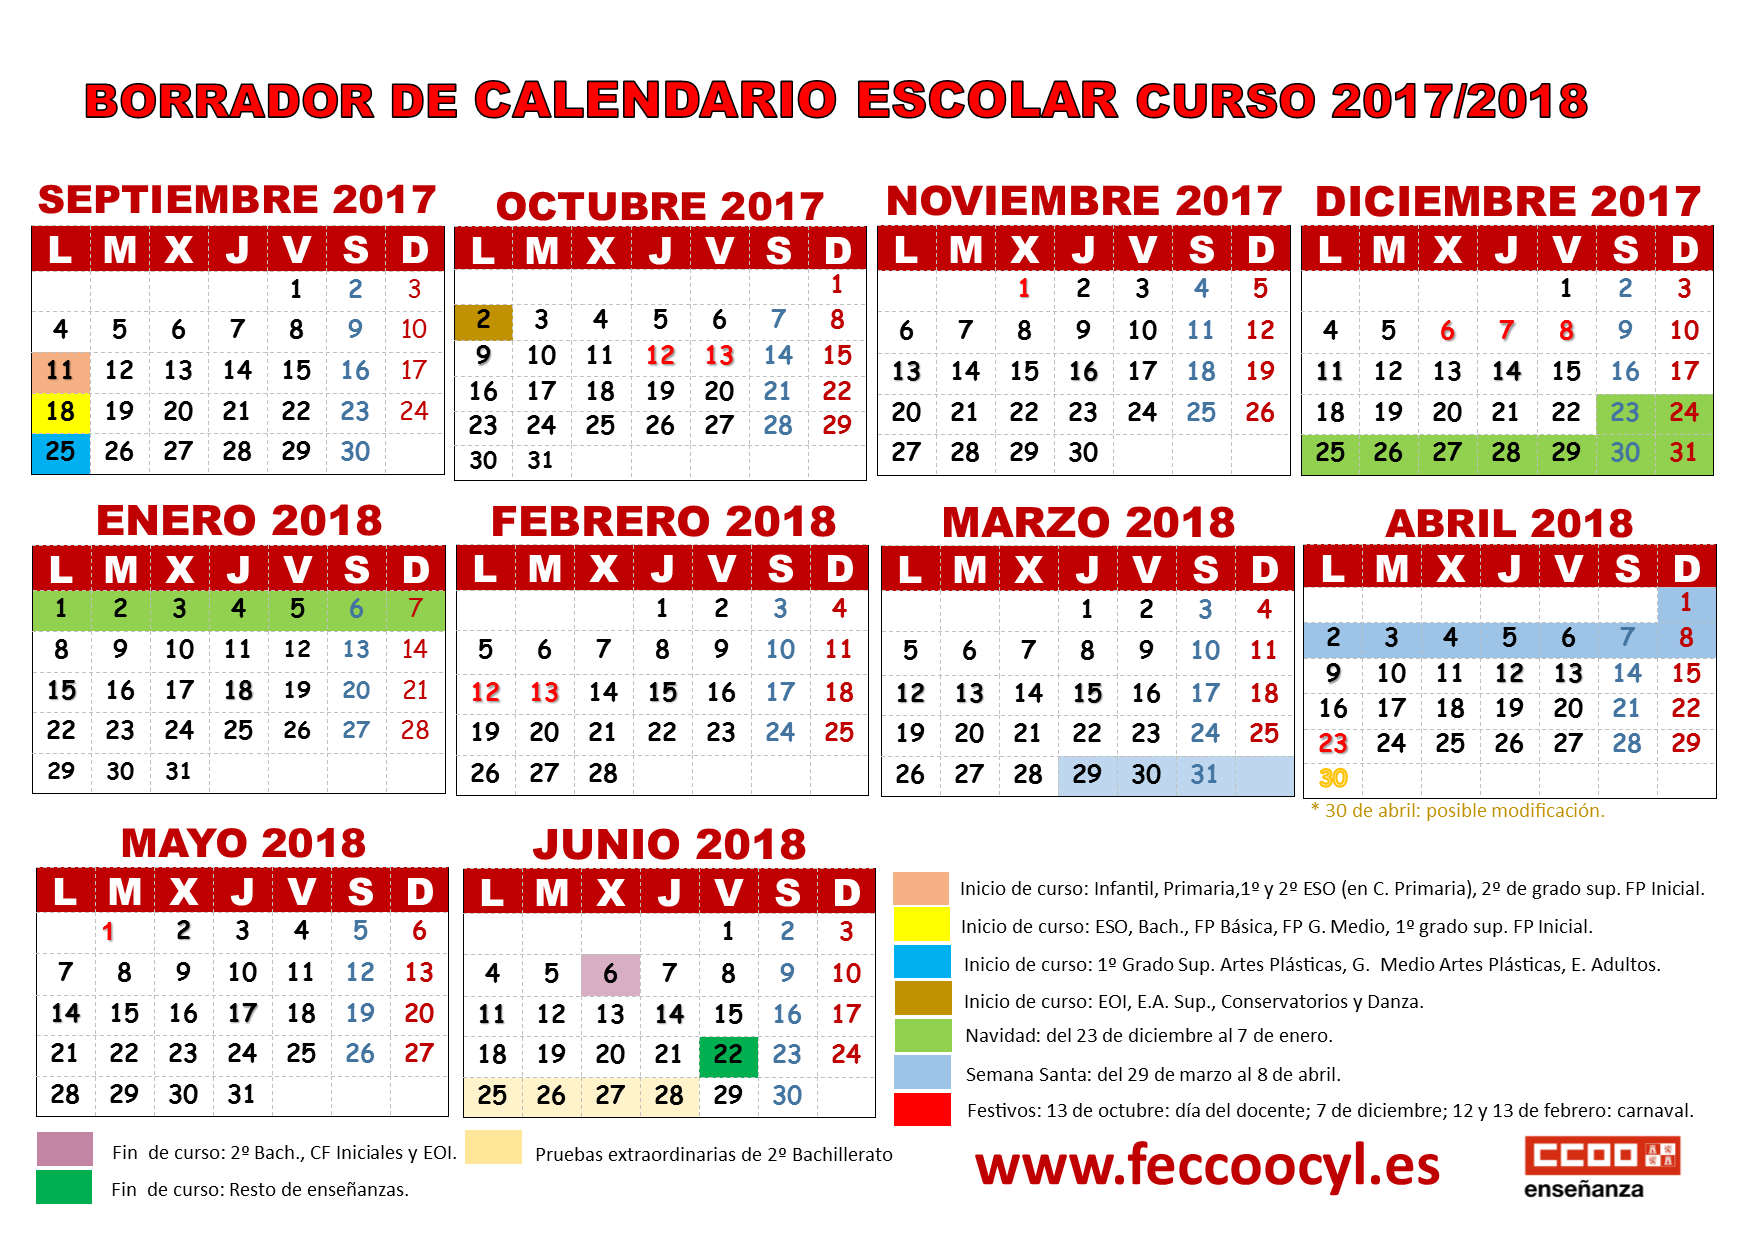 Calendario Academico Madrid.Calendario Escolar 2017 18 Borrador Feccoocyl